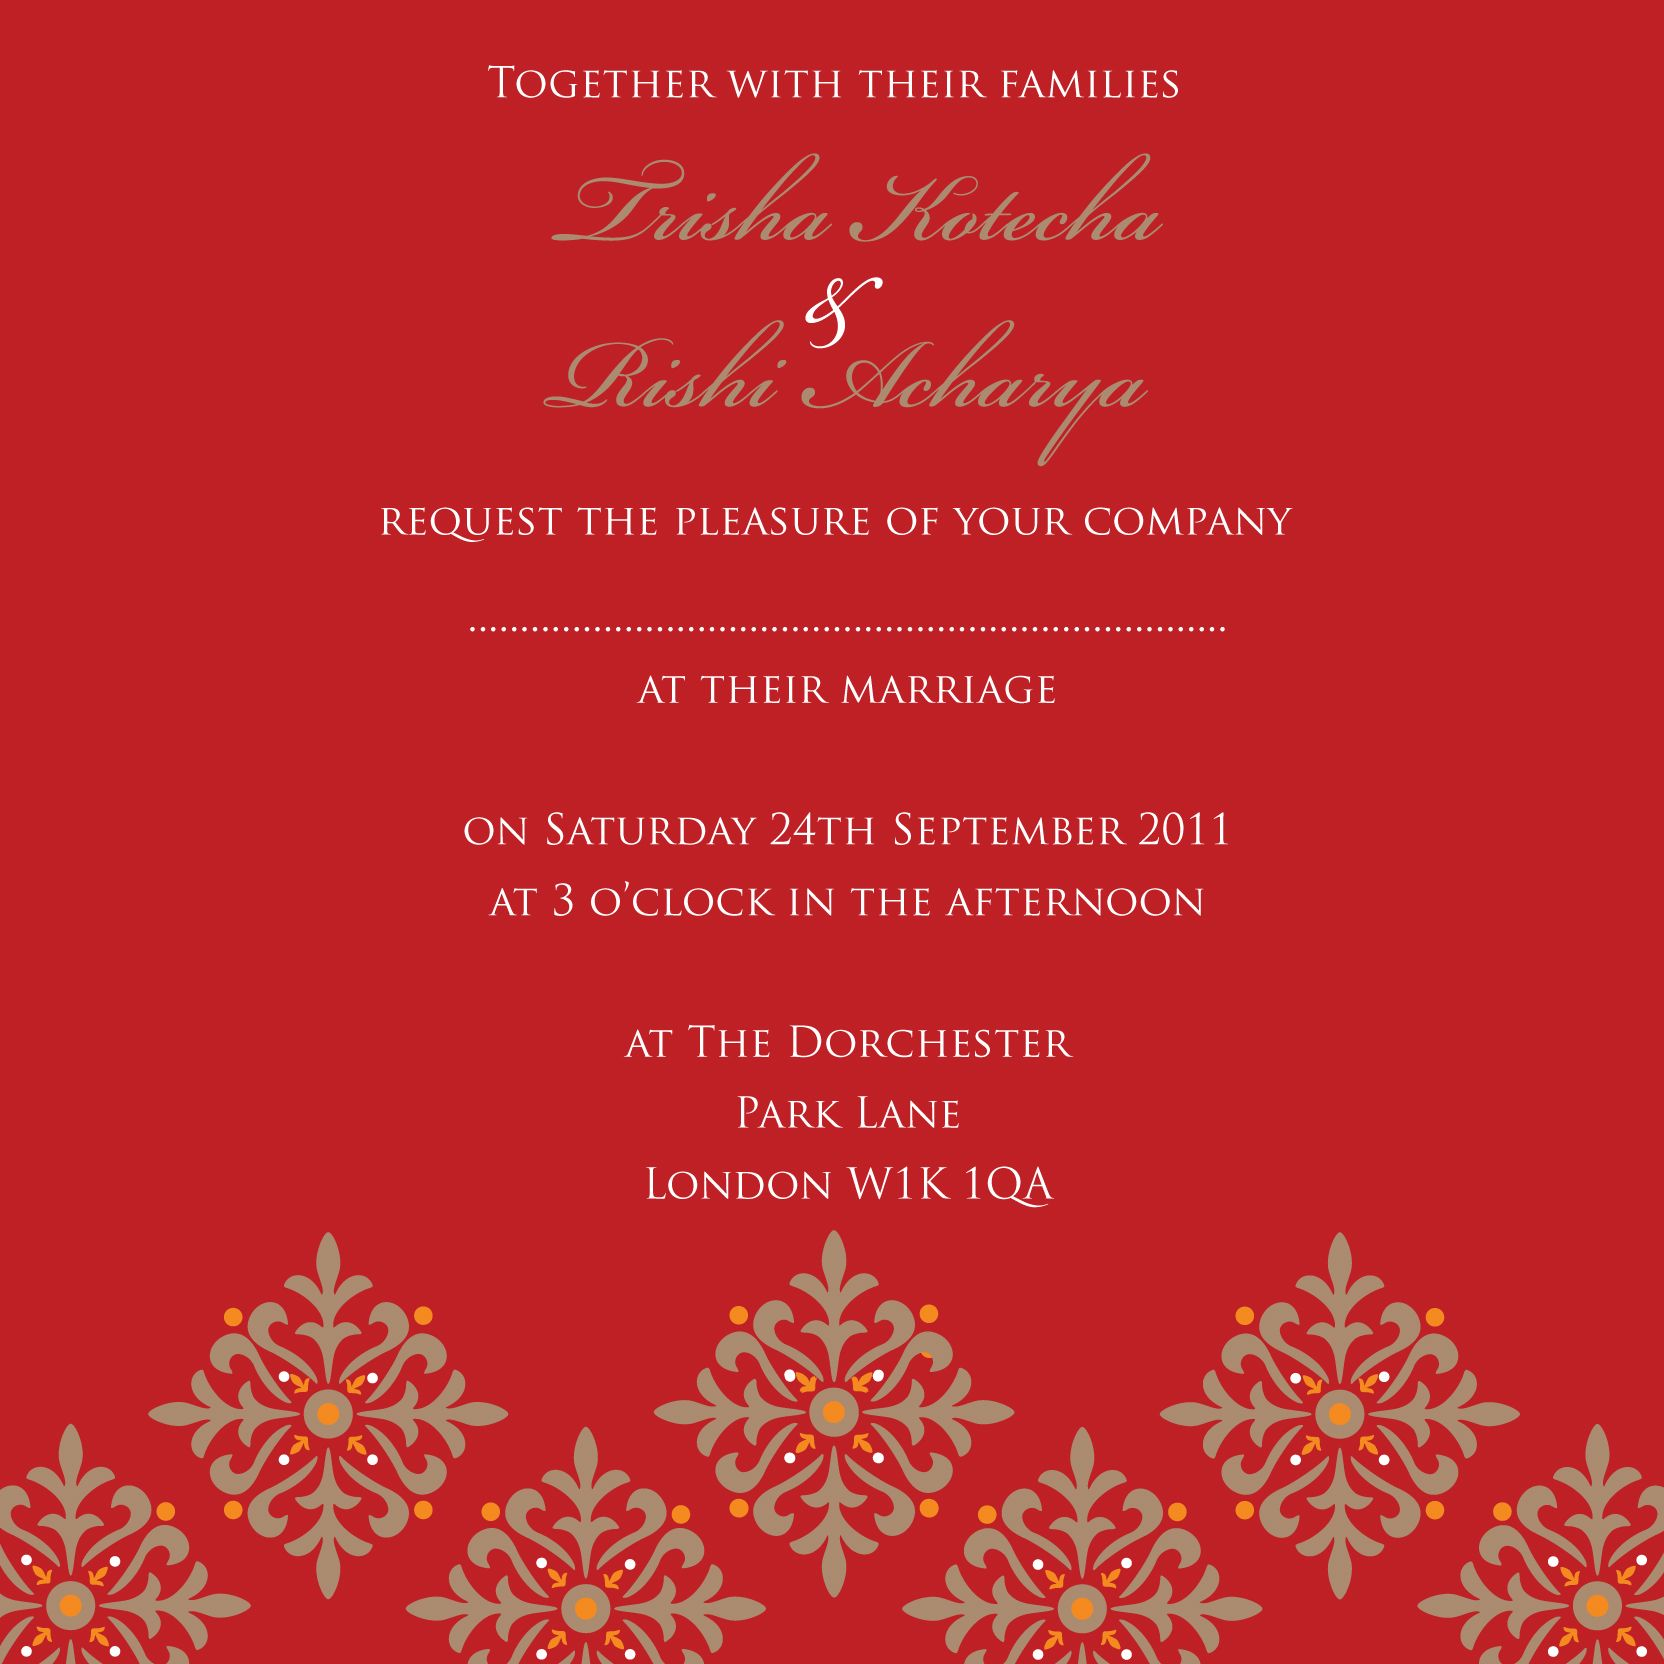 Islamic wedding invitations uk notting